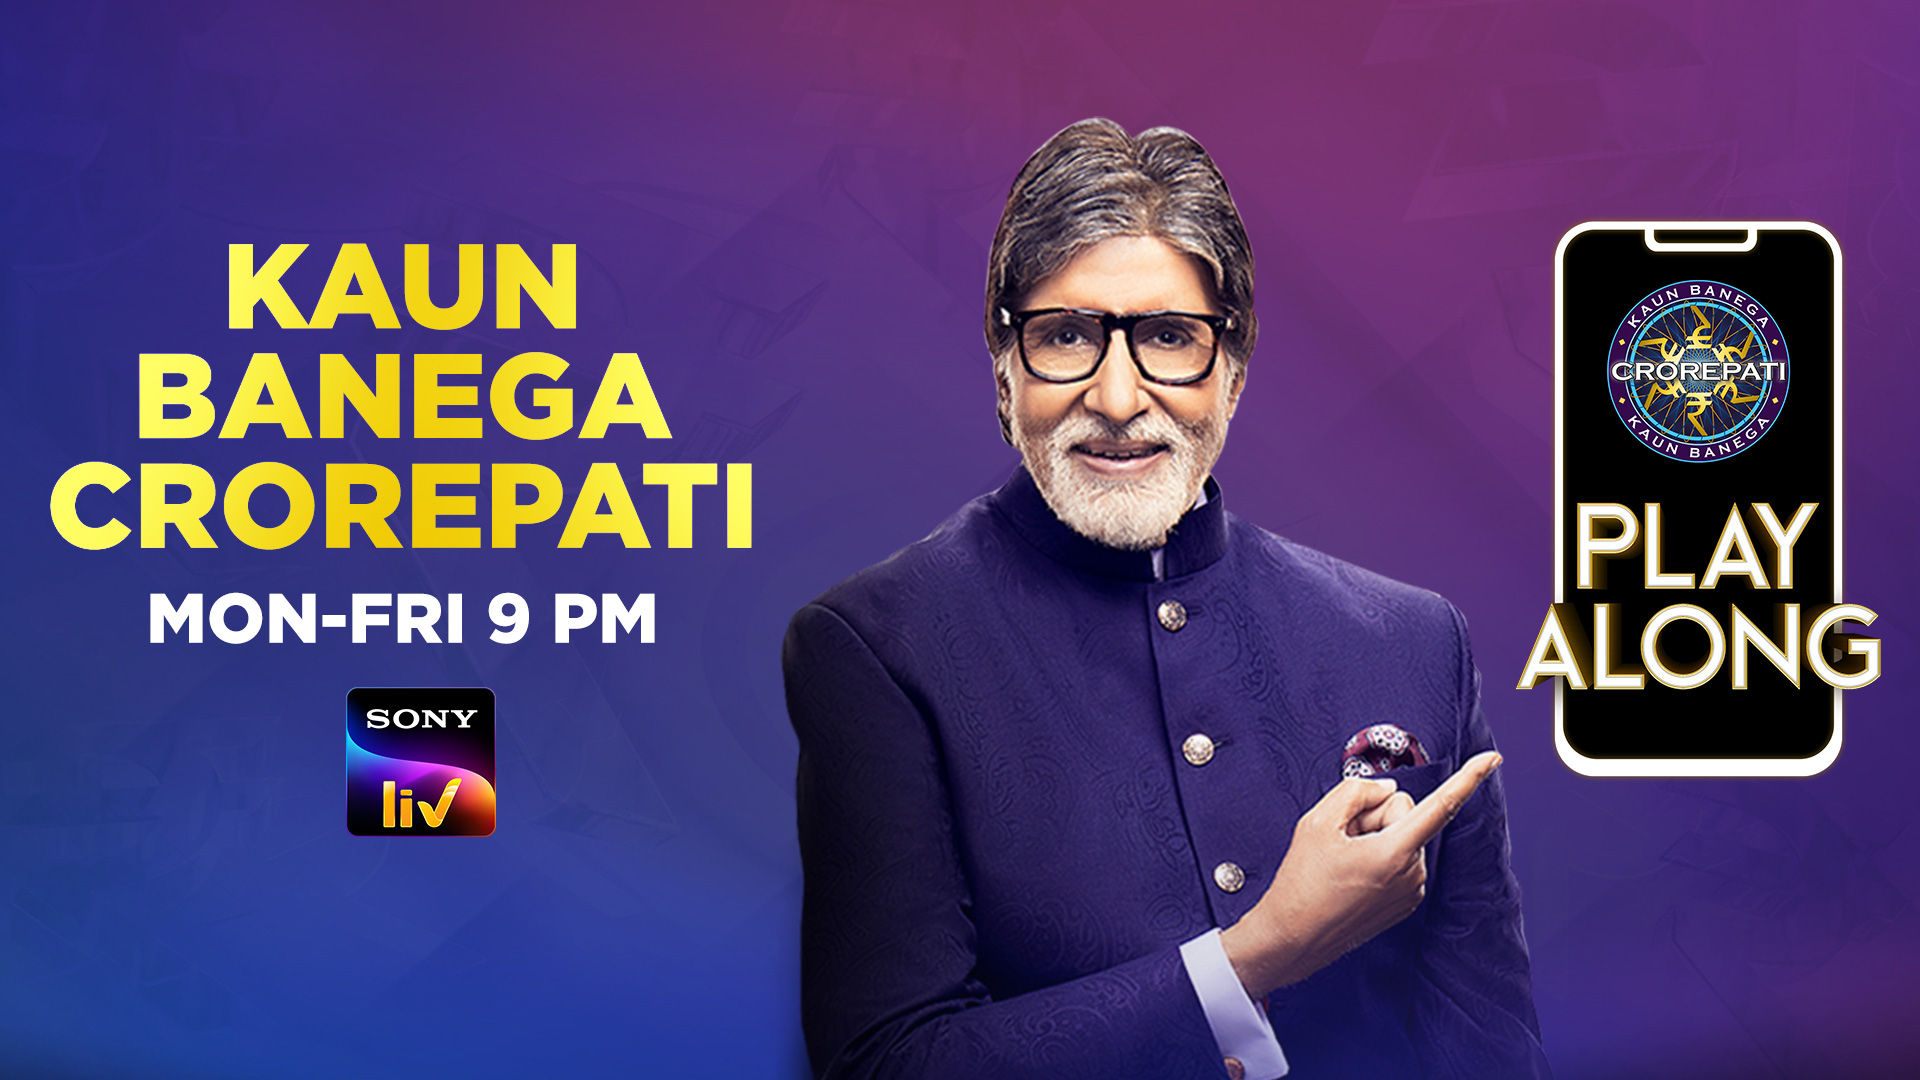 A never seen before opportunity to win Big on SonyLIV